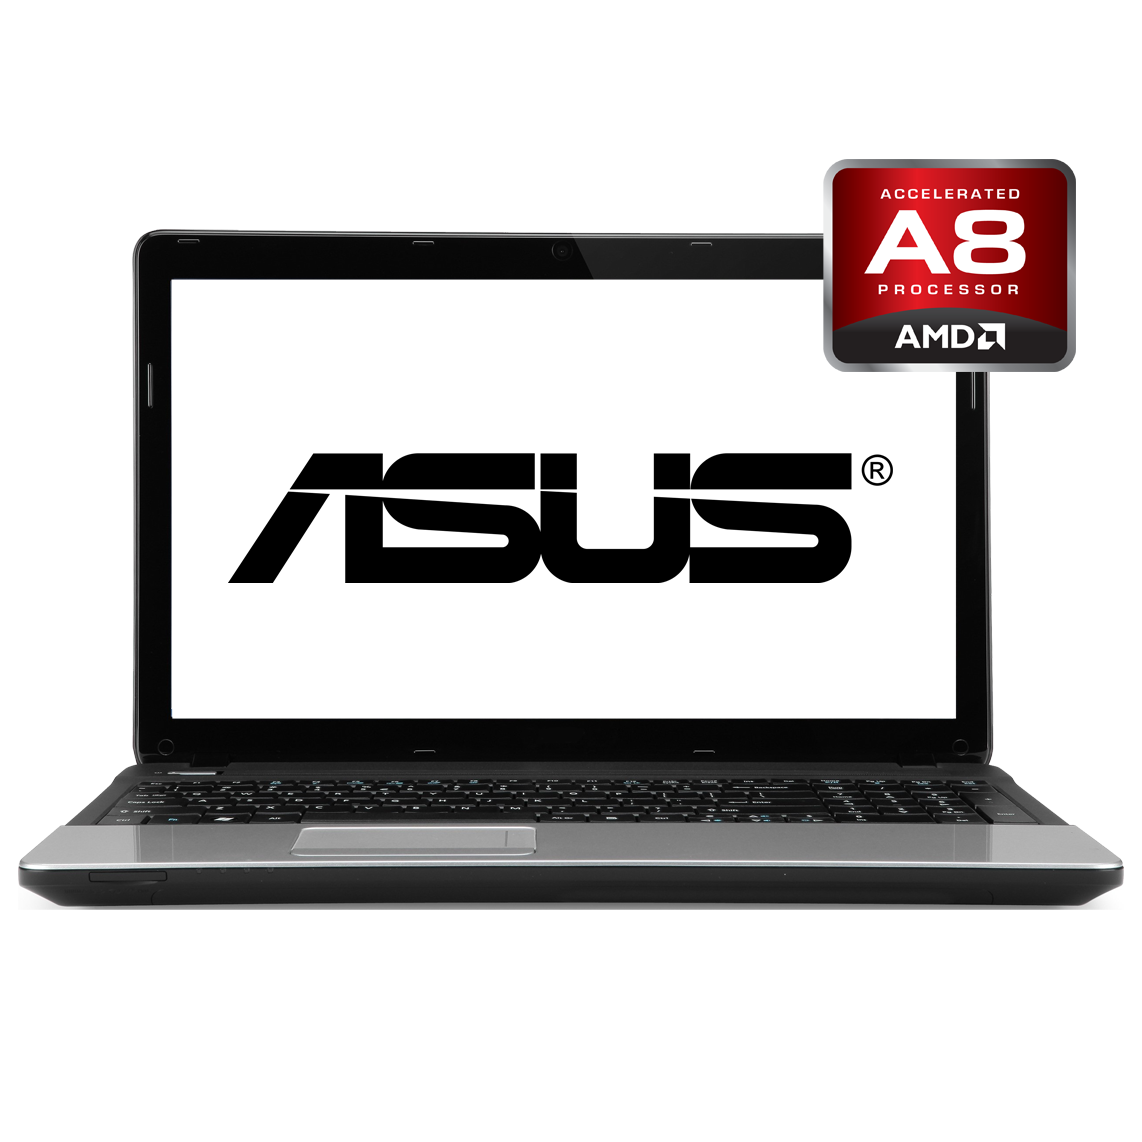 ASUS - 13.3 inch AMD A8